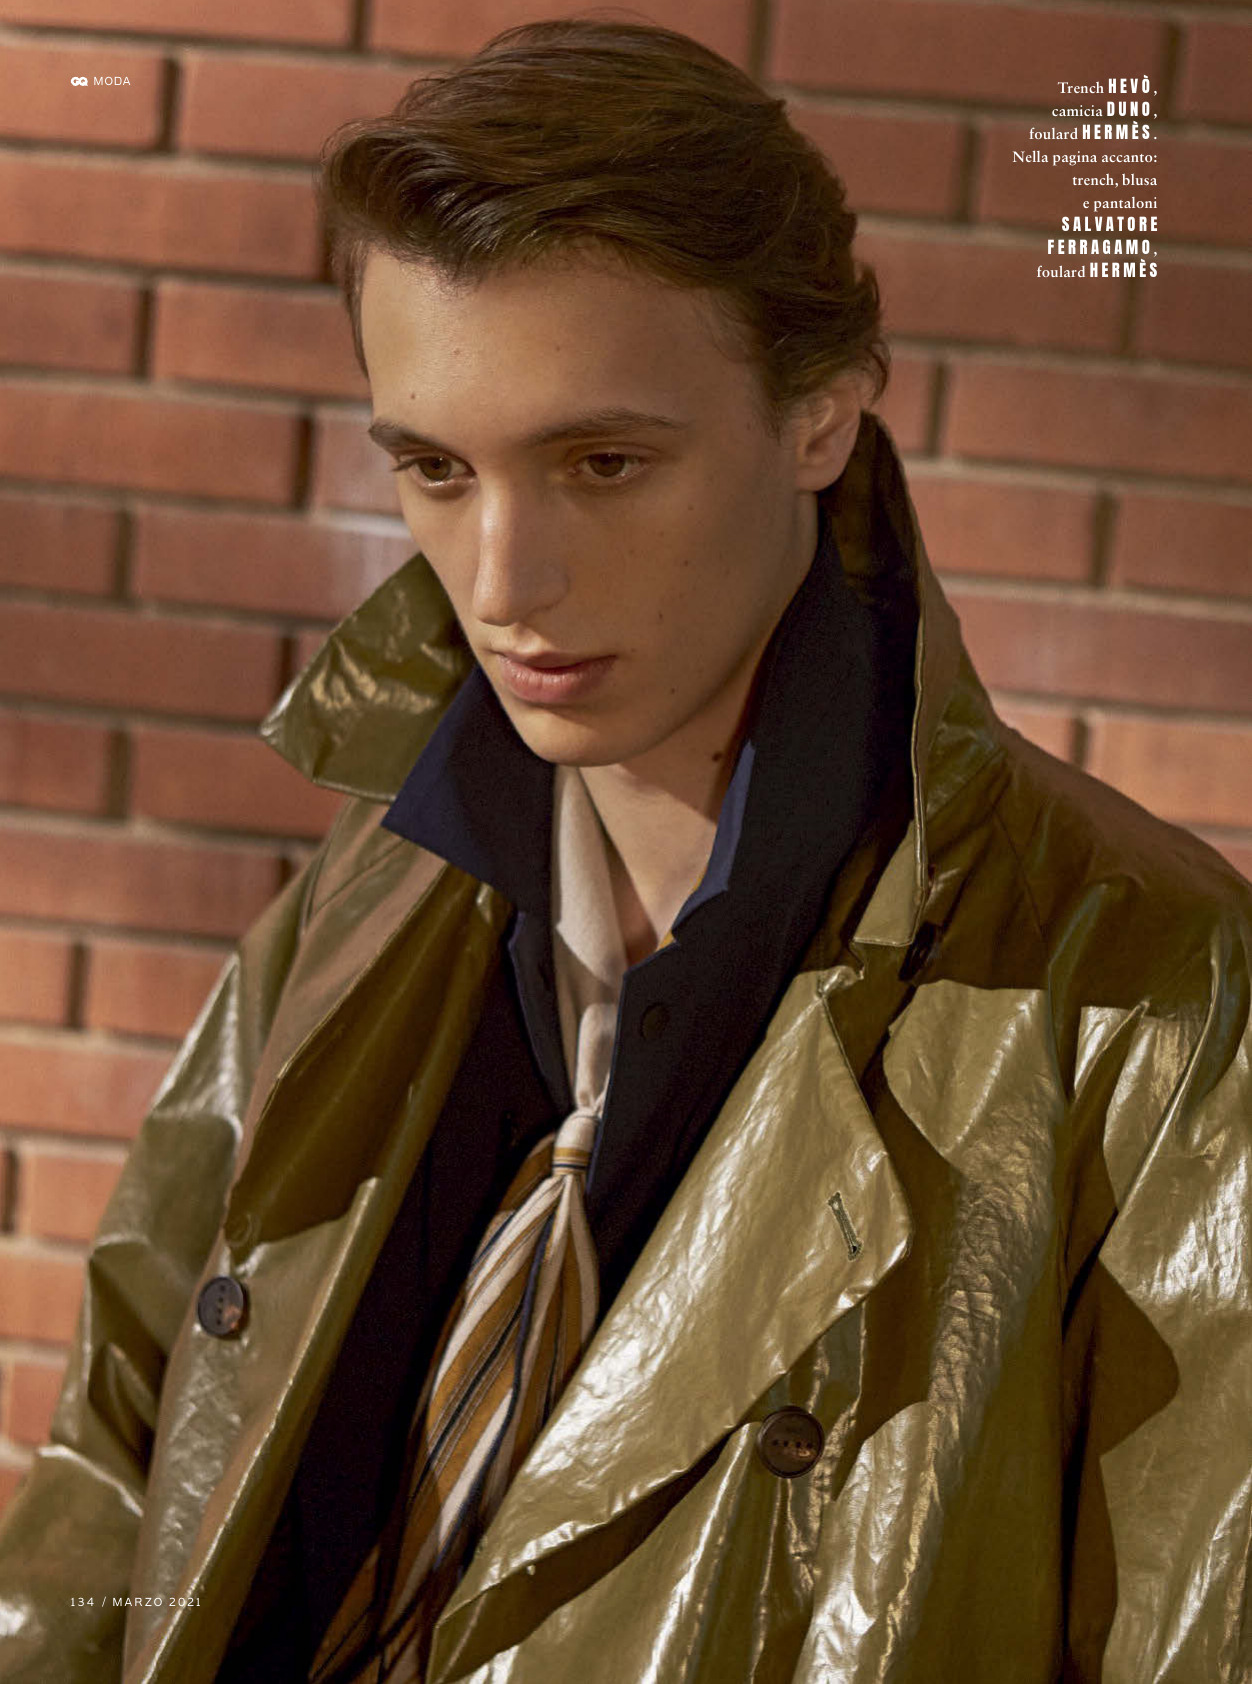 Antoine Duvernois, Theodor Pal for GQ Italia March 2021 Editorial